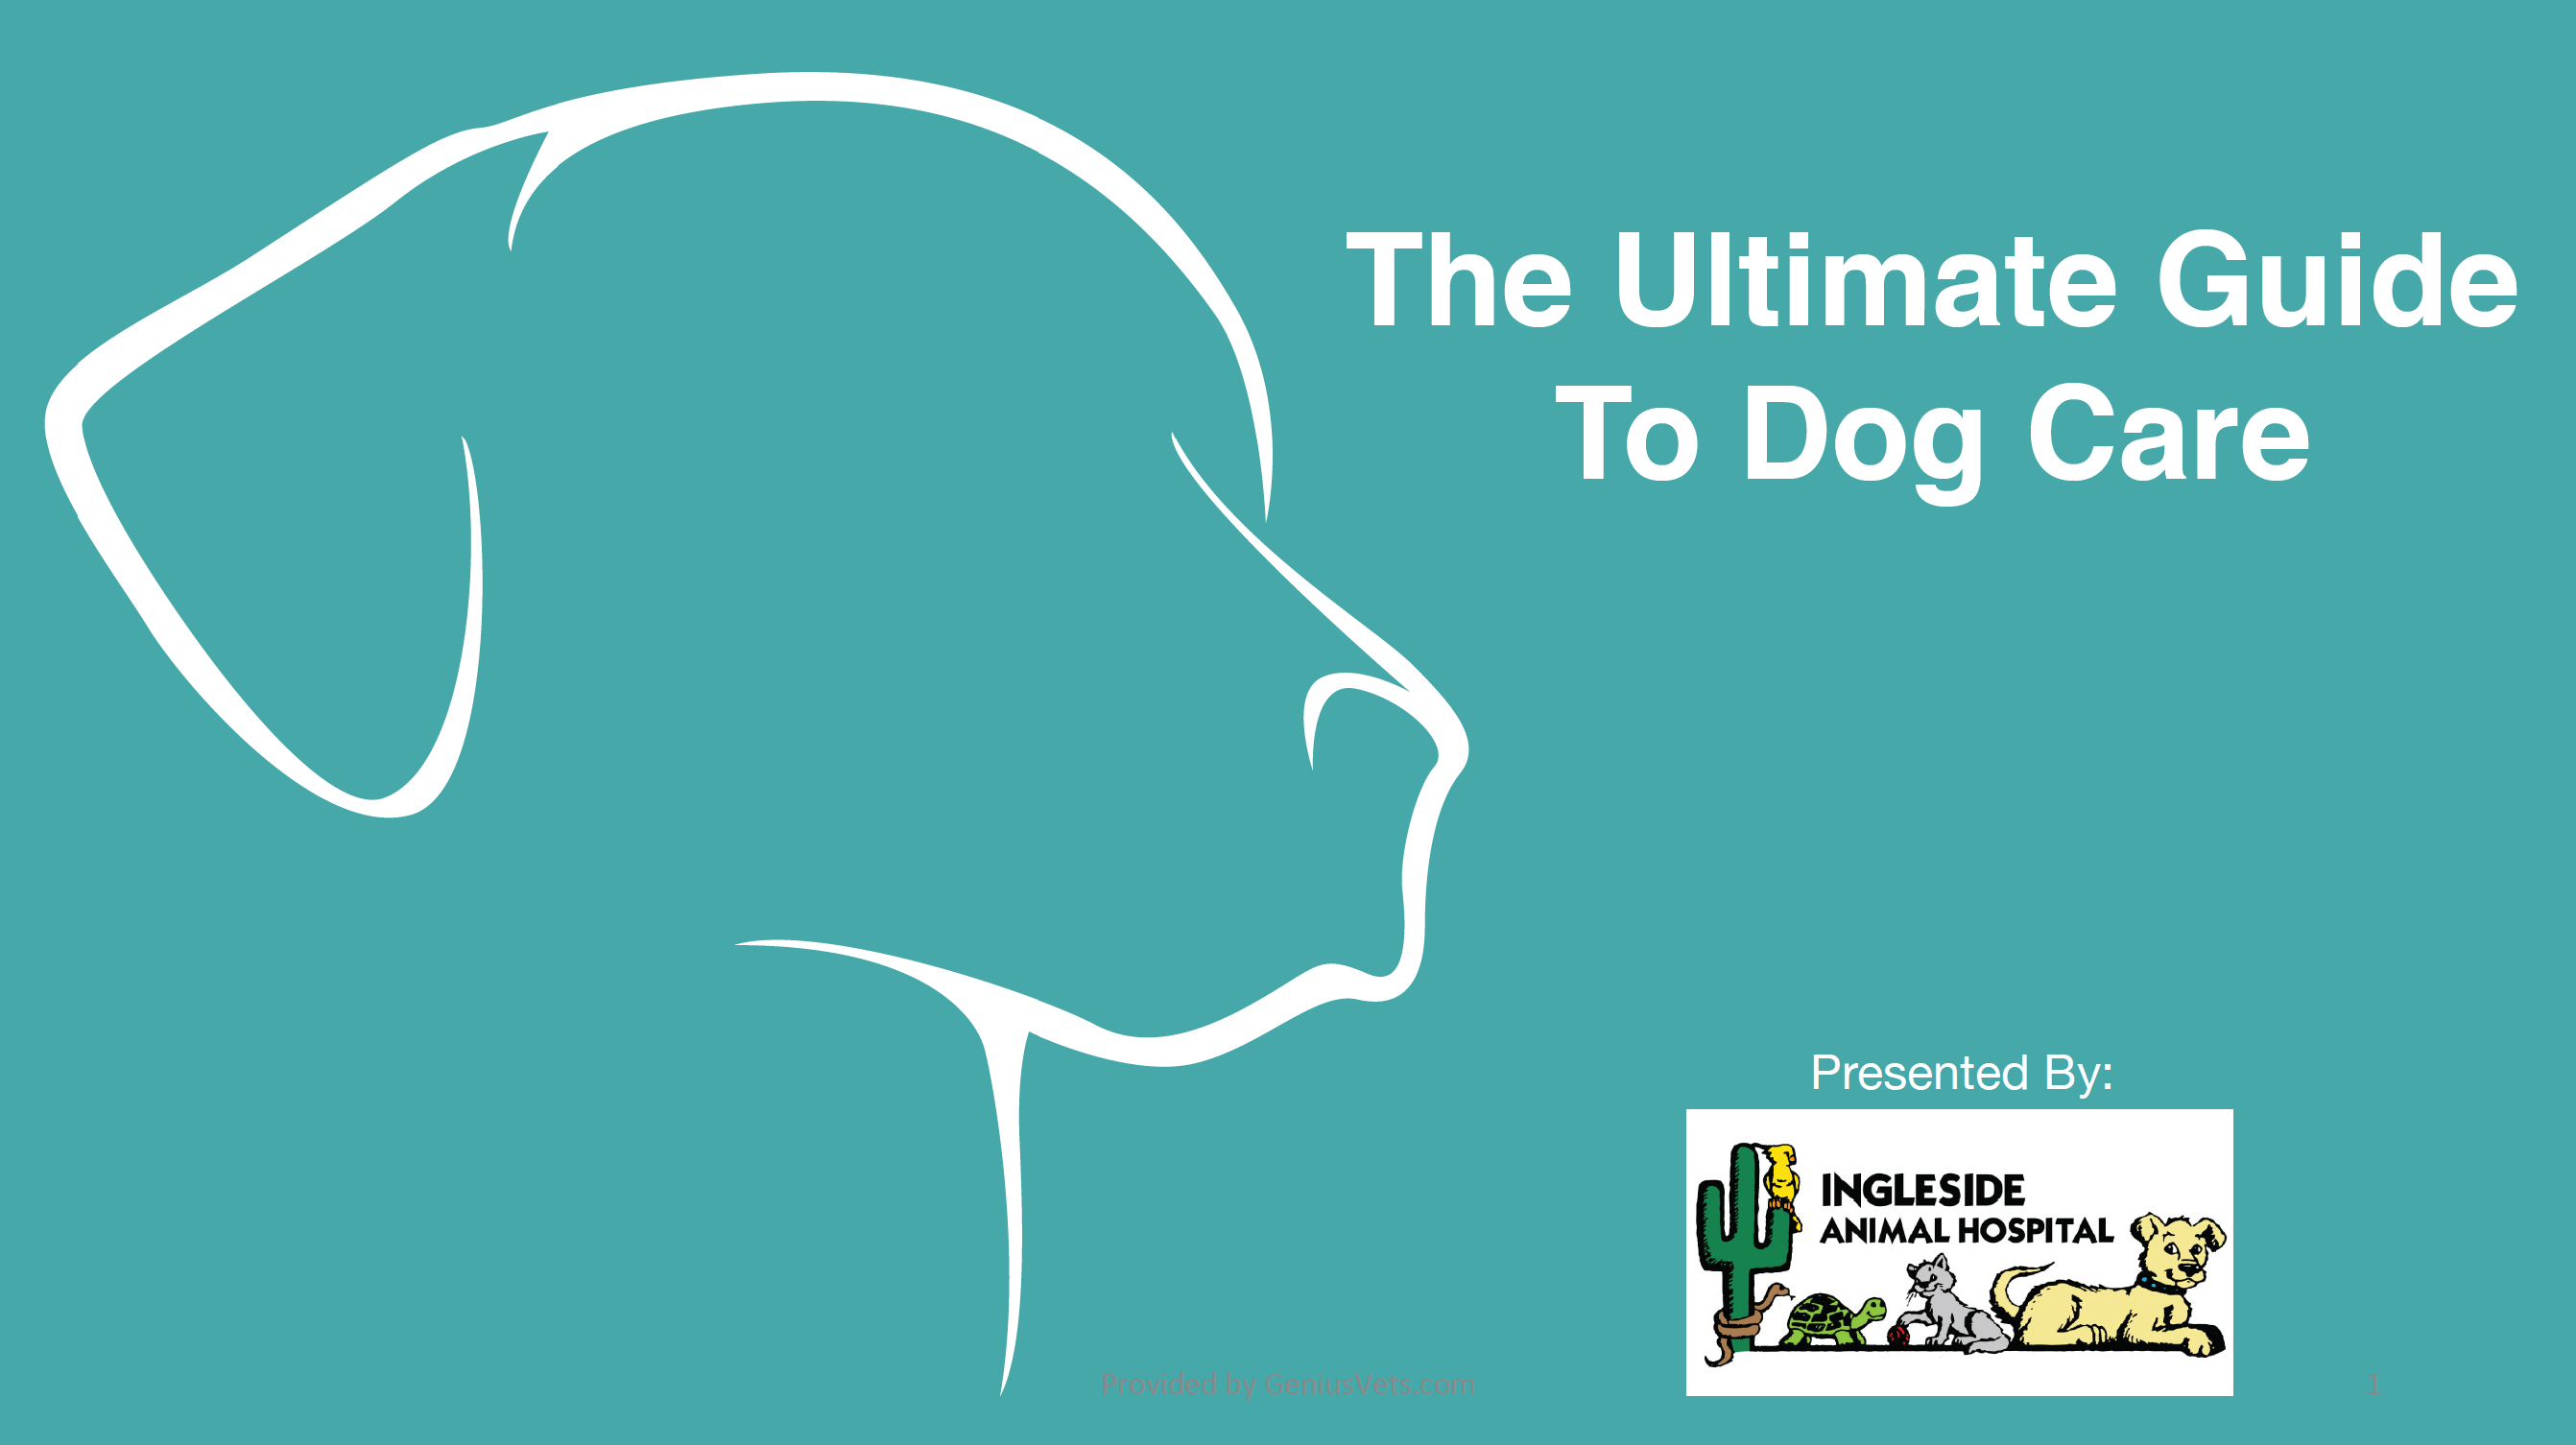 Get The Ultimate Guide To Dog Care